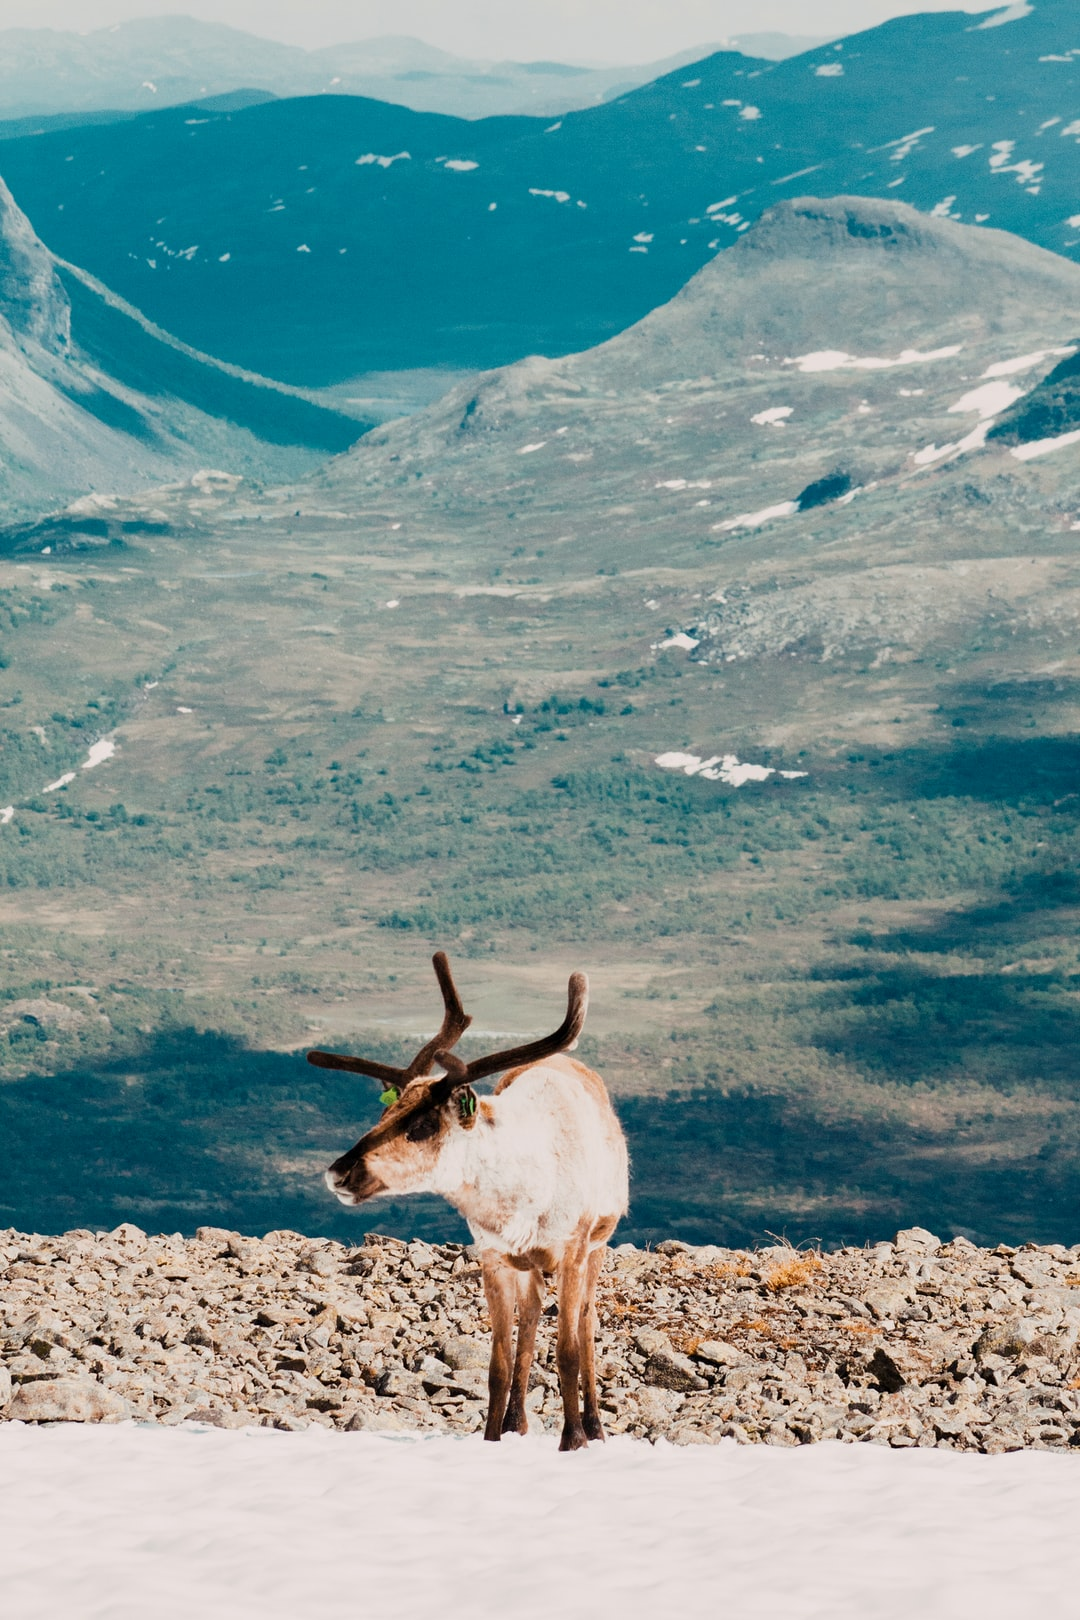 Tame reindeer that you might come across while hiking Besseggen. They prefer to cool themselves on the snow fields scattered across the mountainsides.